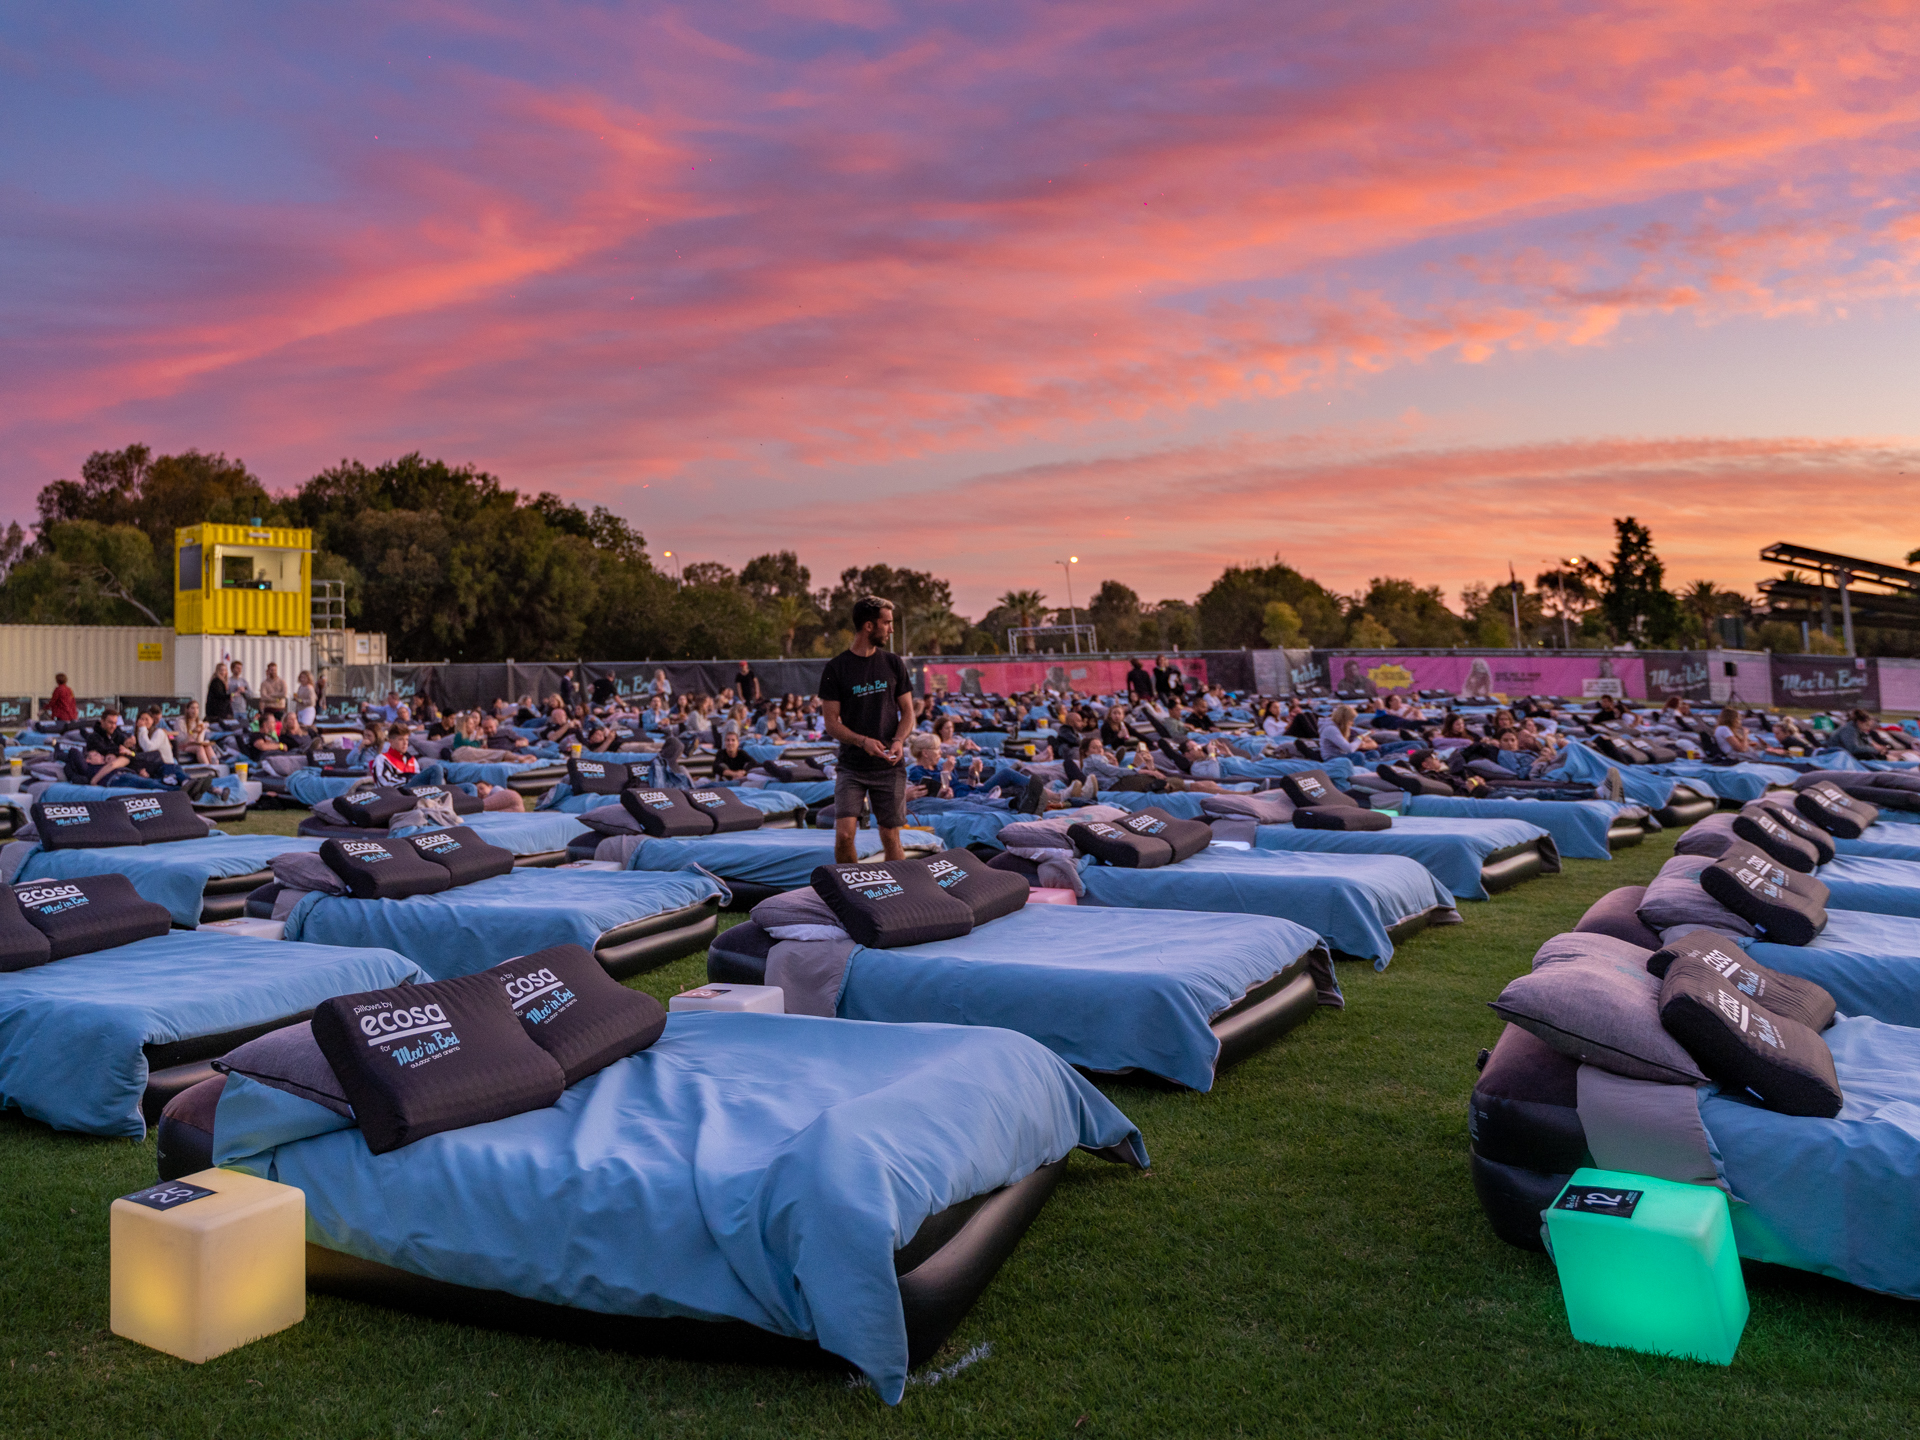 Sunset over bed outdoor cinema